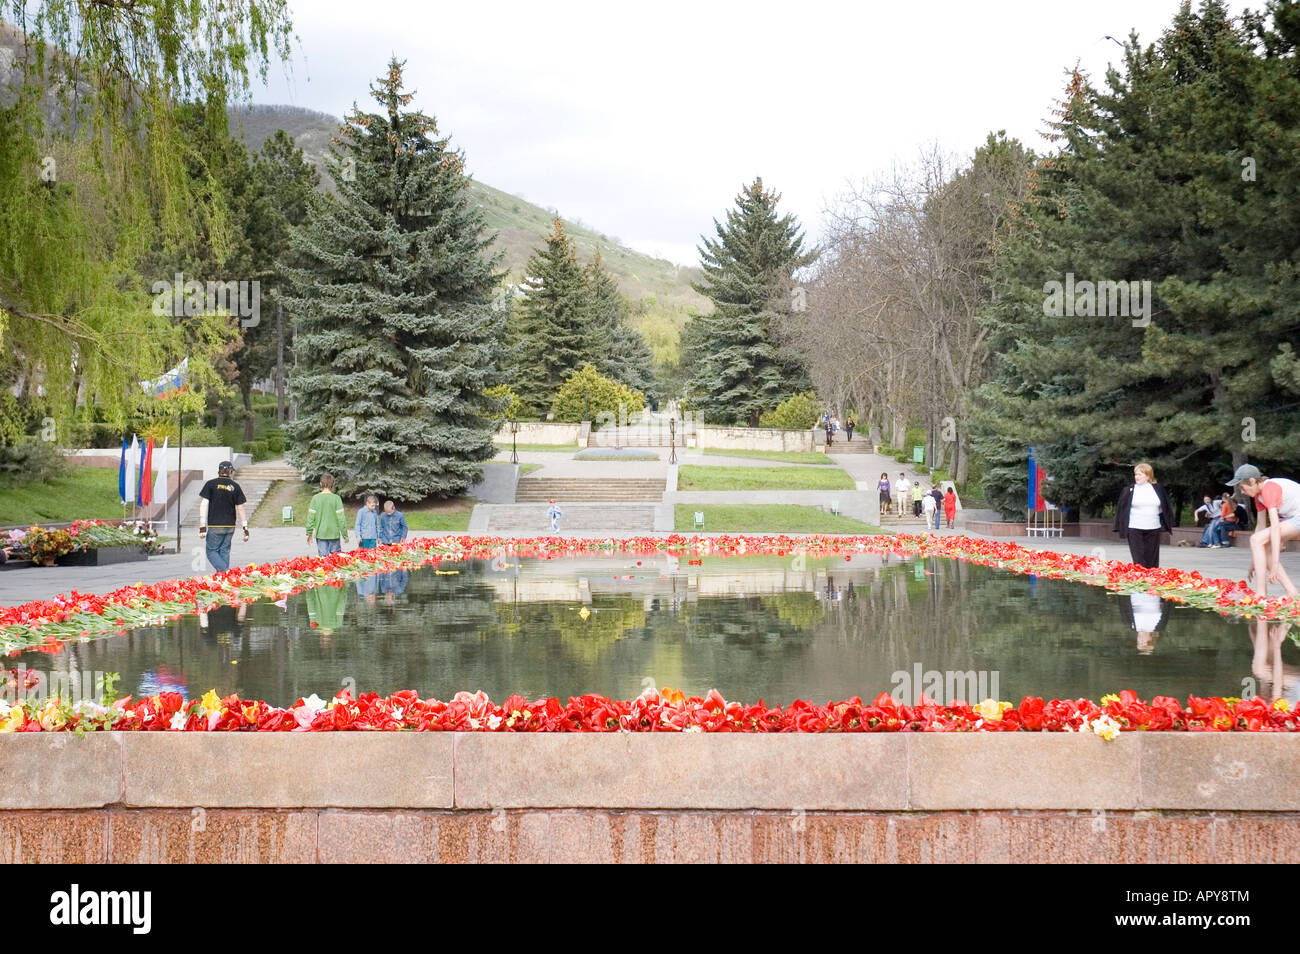 Floral tribute on Russia Day in Pyatigorsk Russia - Stock Image